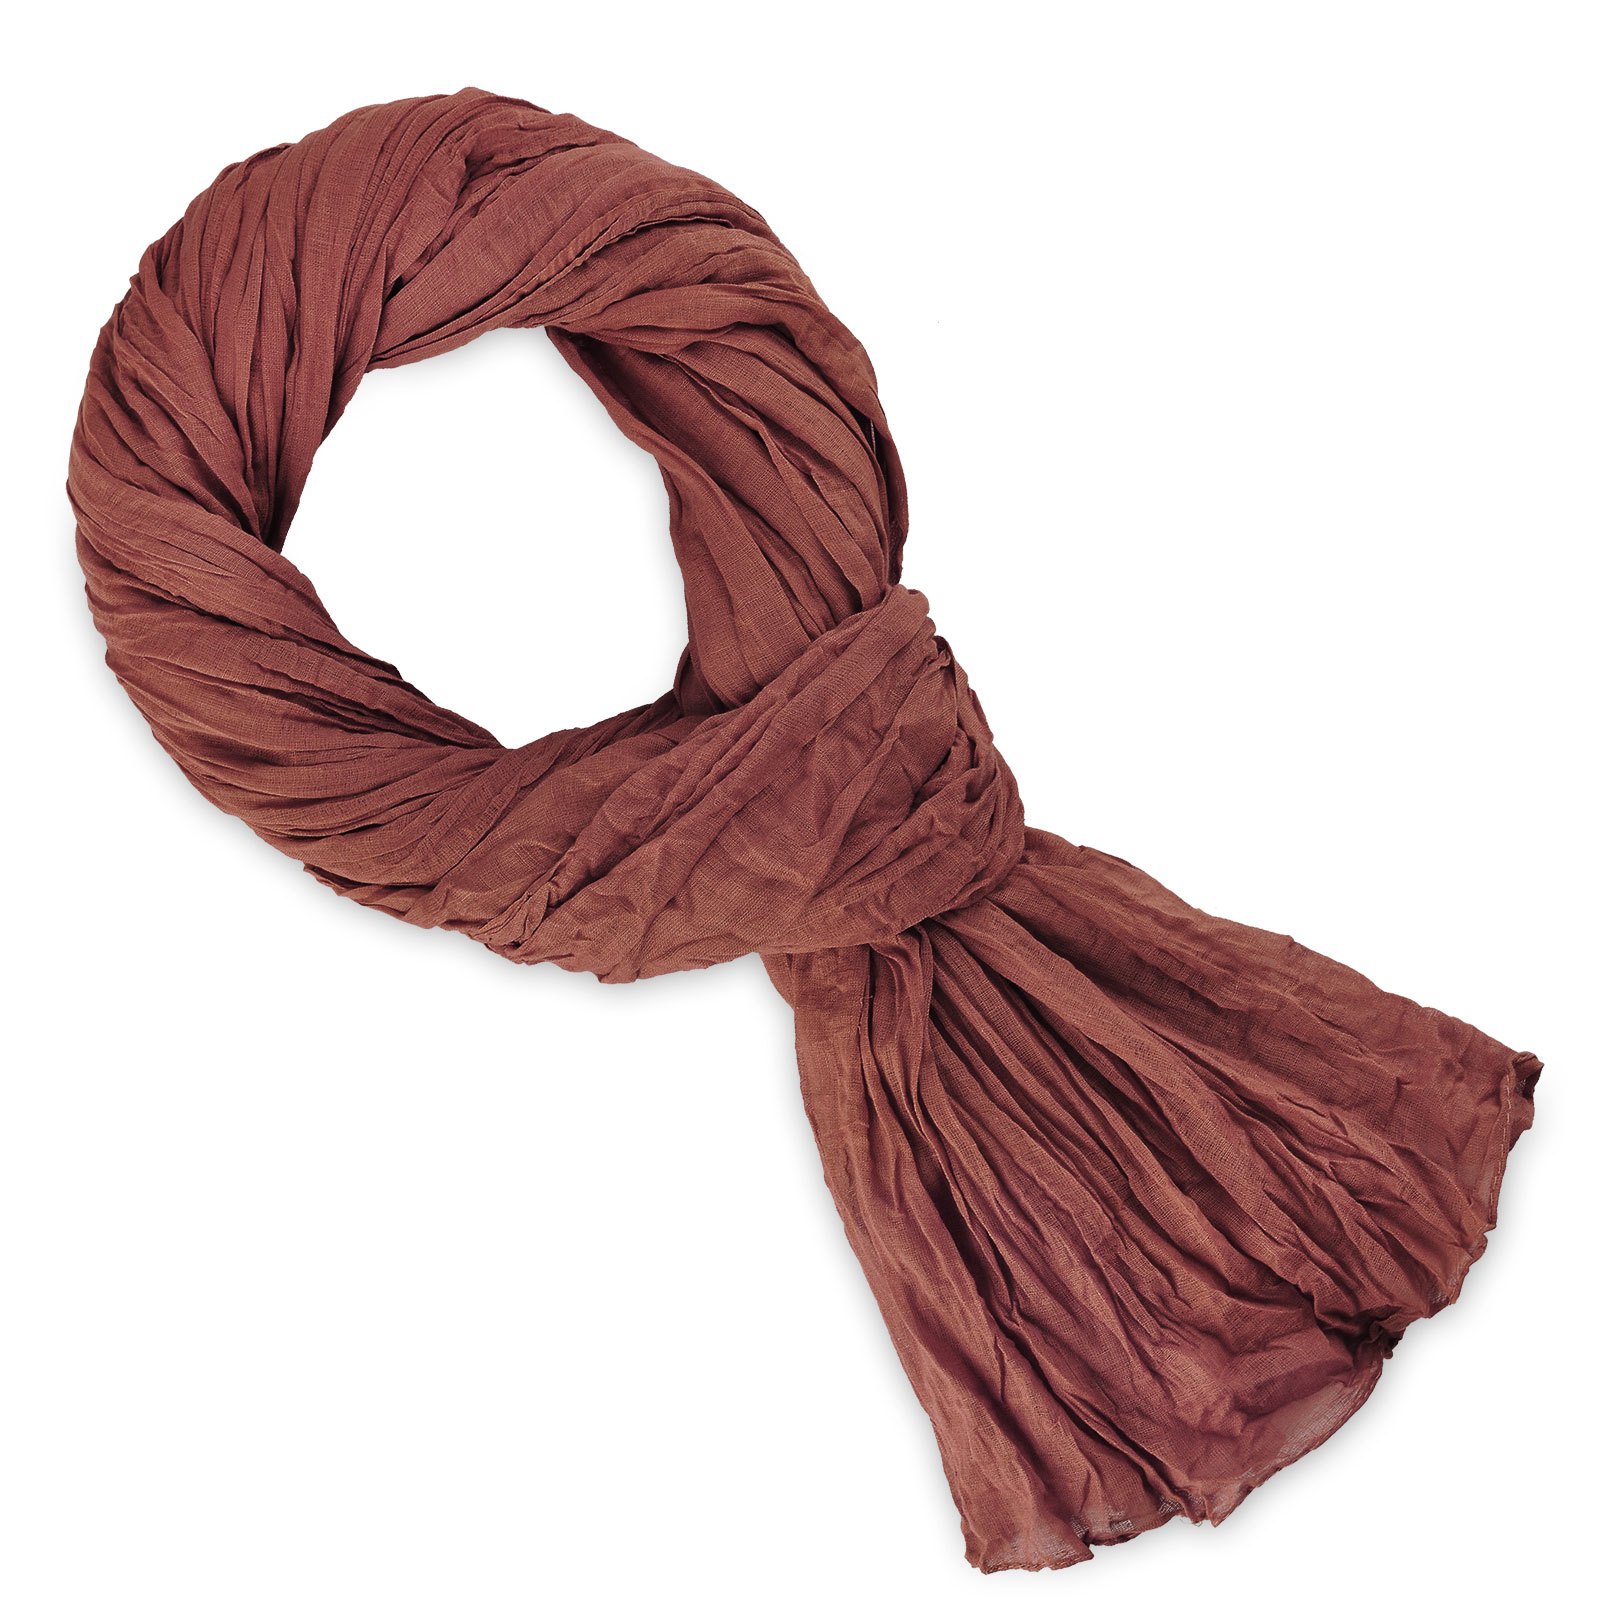 AT-02210-F16-cheche-coton-marron-ecureuil-uni